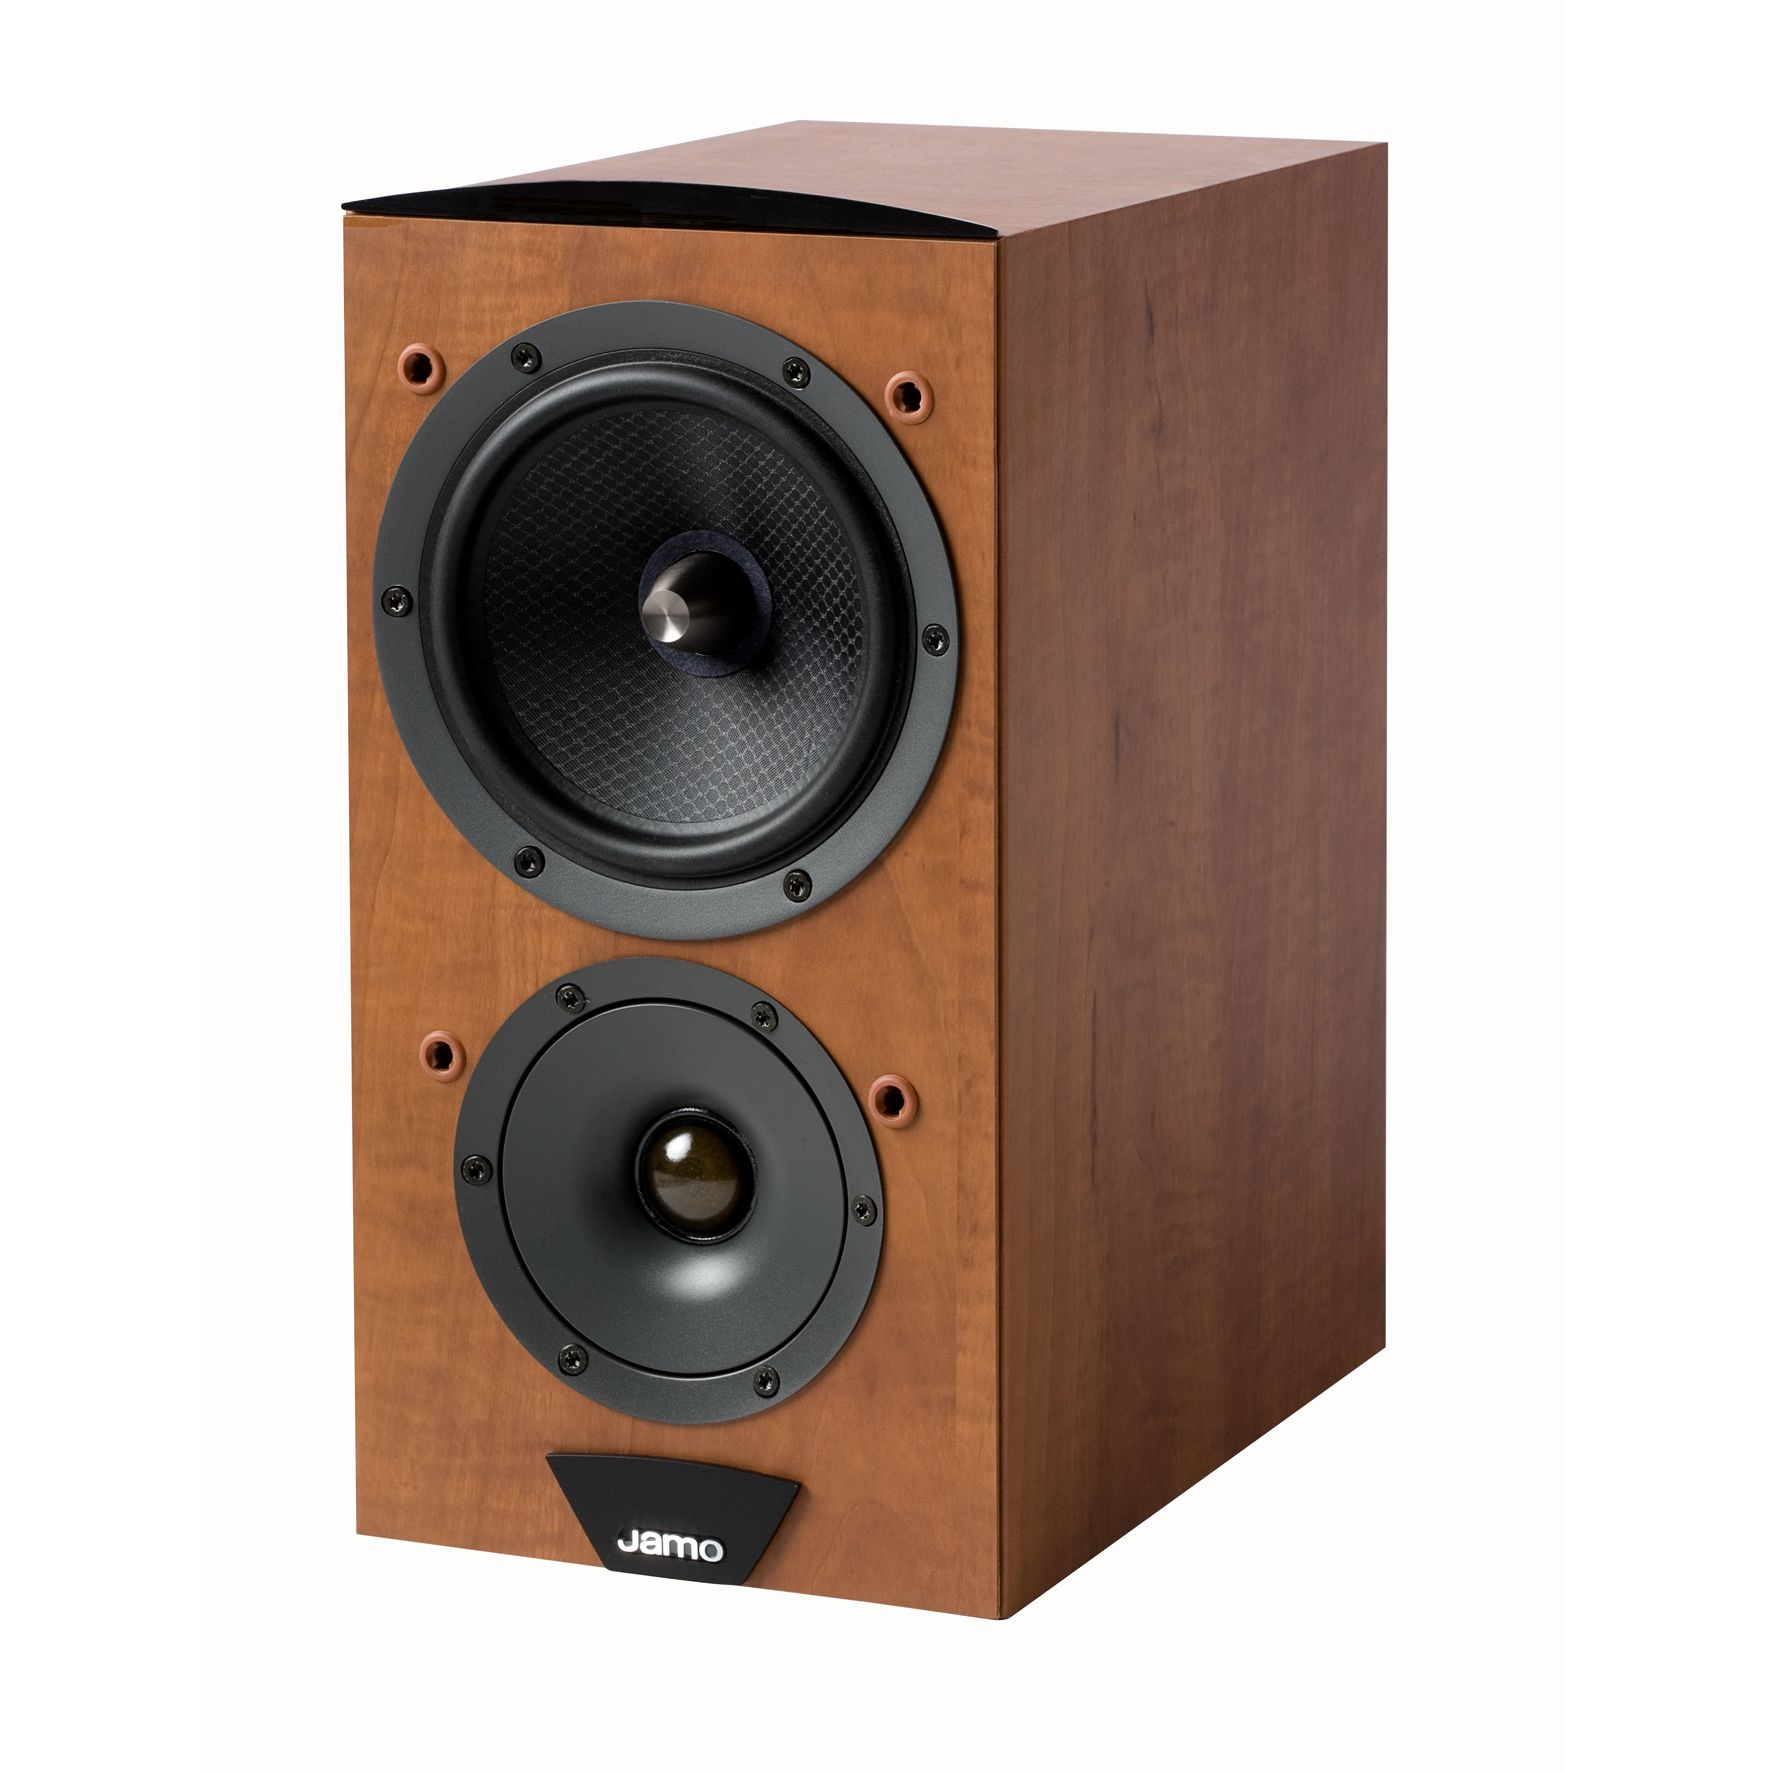 diapaison two audiophile karis bookshelf wiki reviews audio way reviewed speakers thumb mini information index loudspeakers diapason speaker monitors